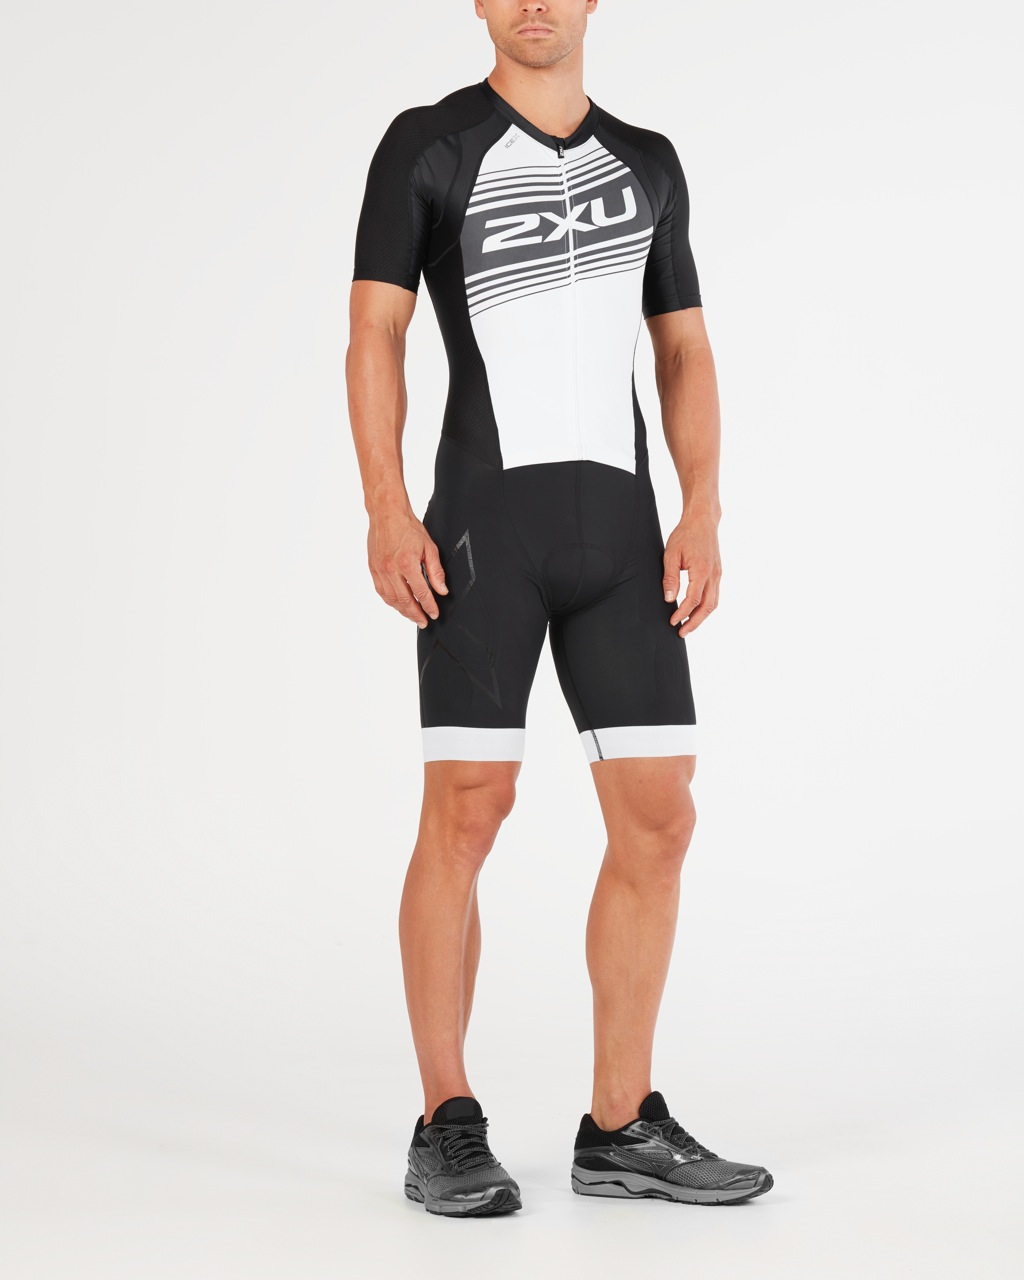 BODY 2XU MEN'S COMPRESSION FULL ZIP SLEEVED TRISUIT MT4838d black white logo.jpg